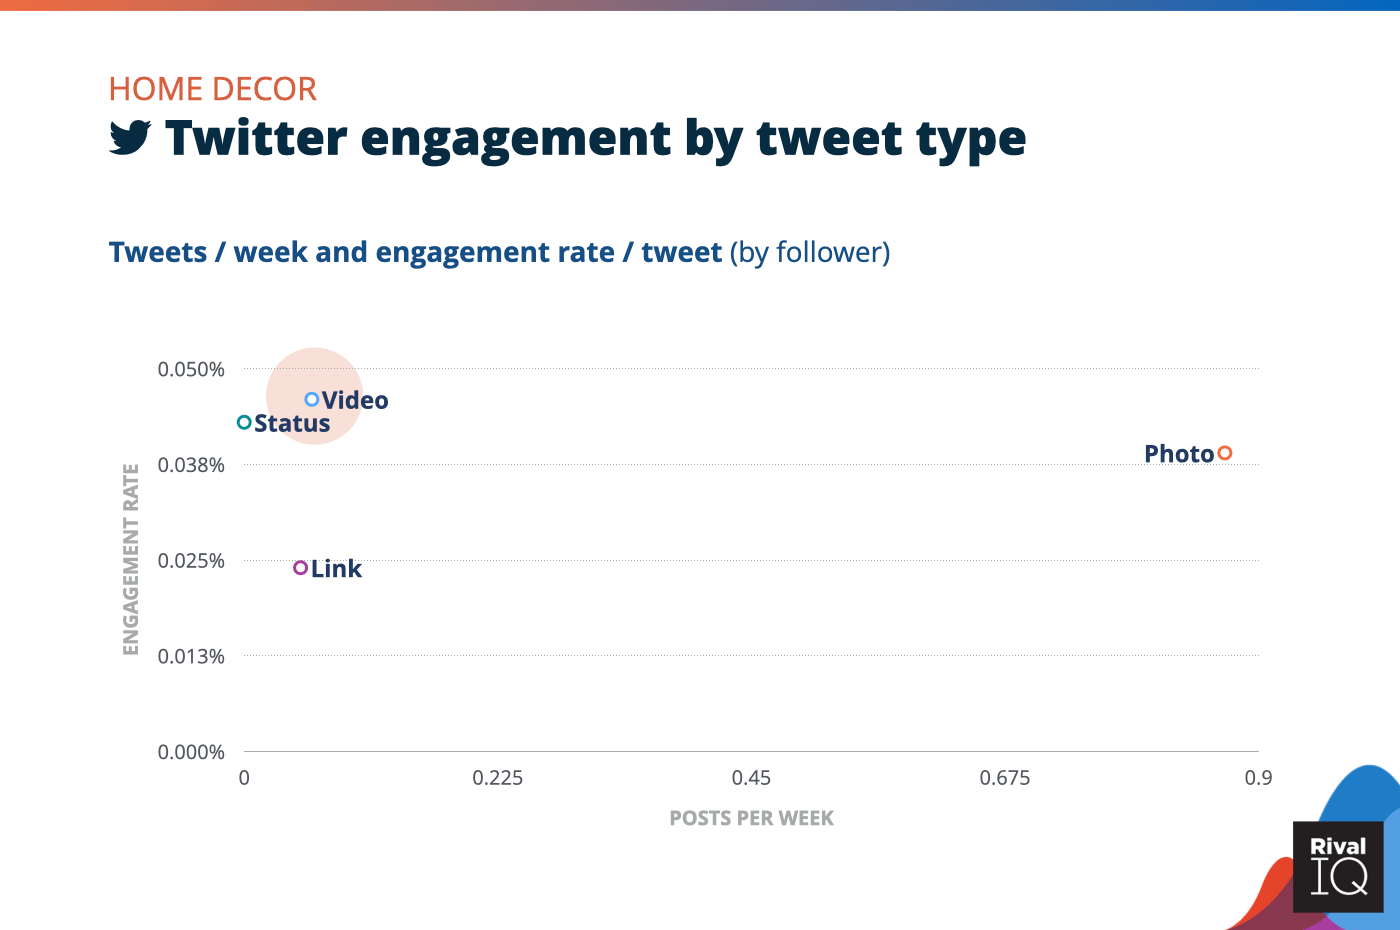 Chart of social media benchmarks for Twitter posts per week and engagement rate by tweet type, Home Decor